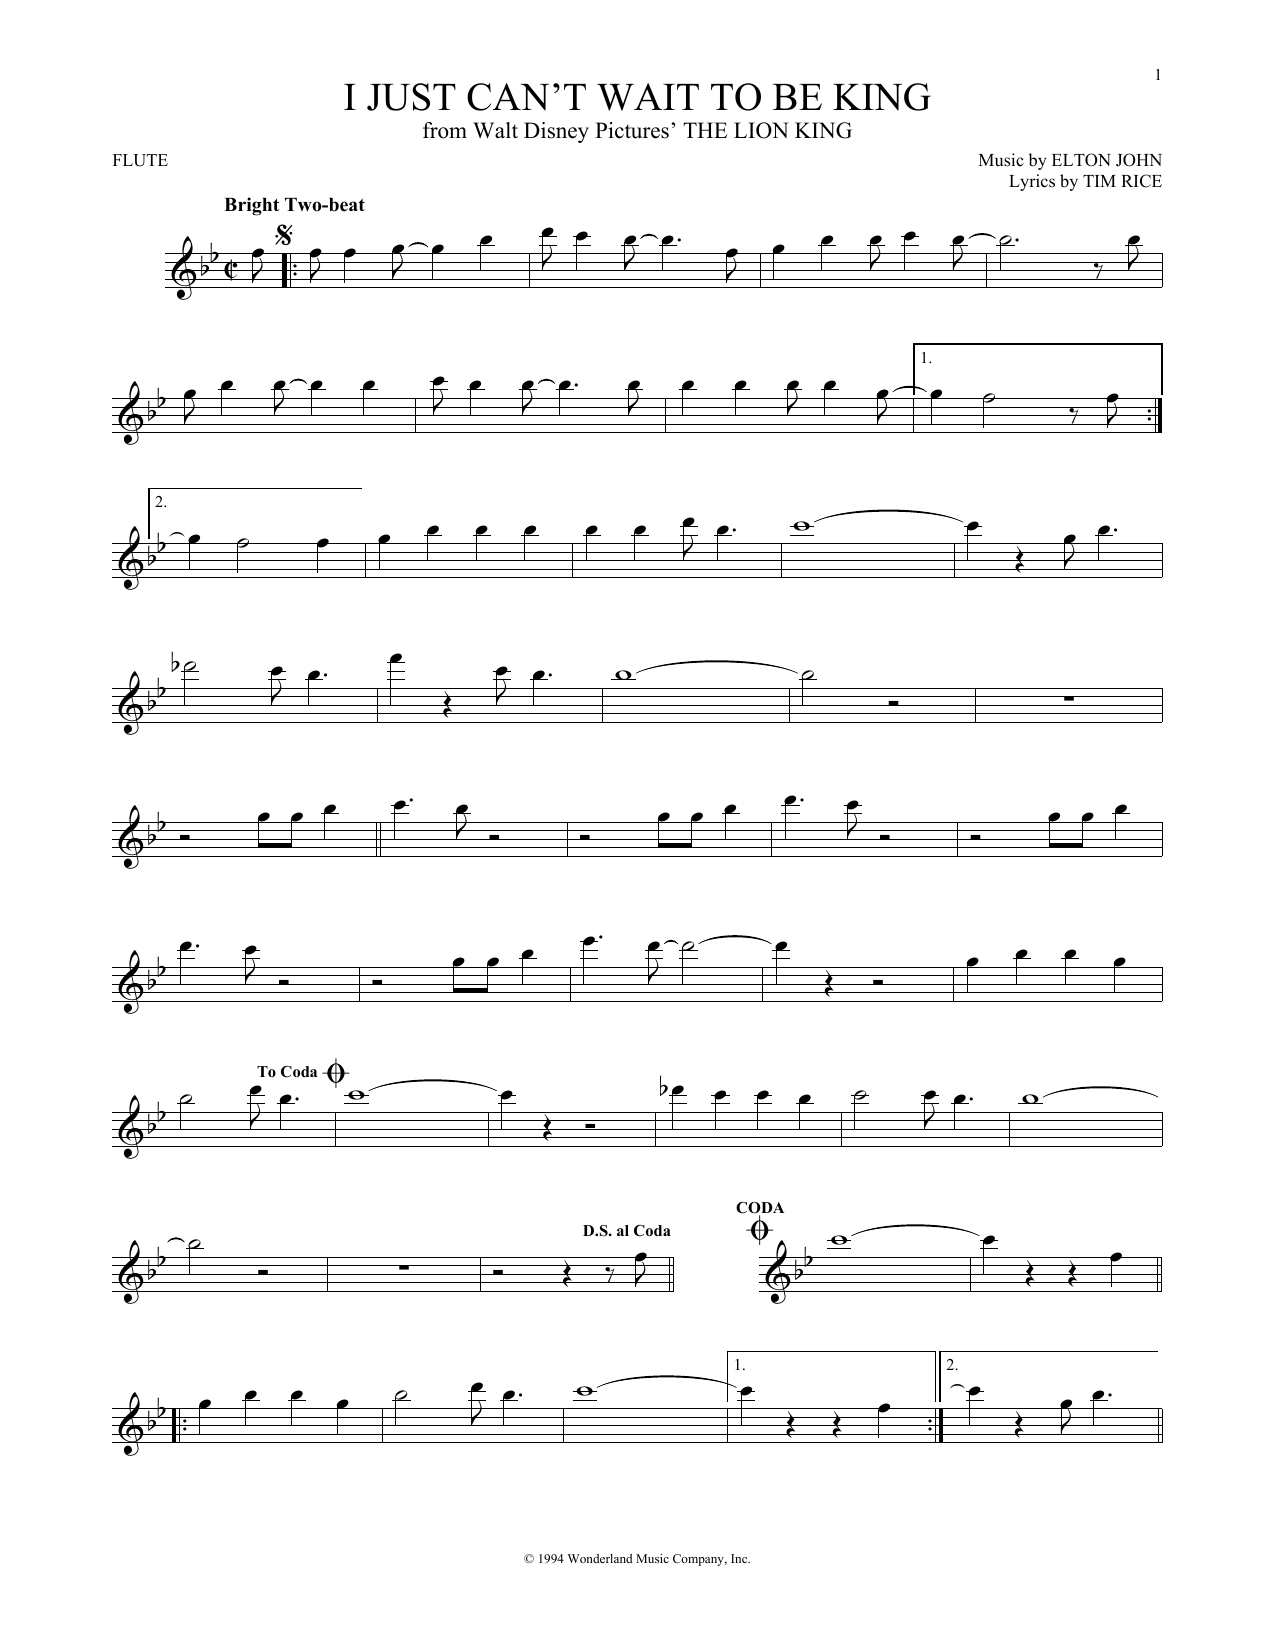 I Just Can't Wait To Be King (Flute Solo)